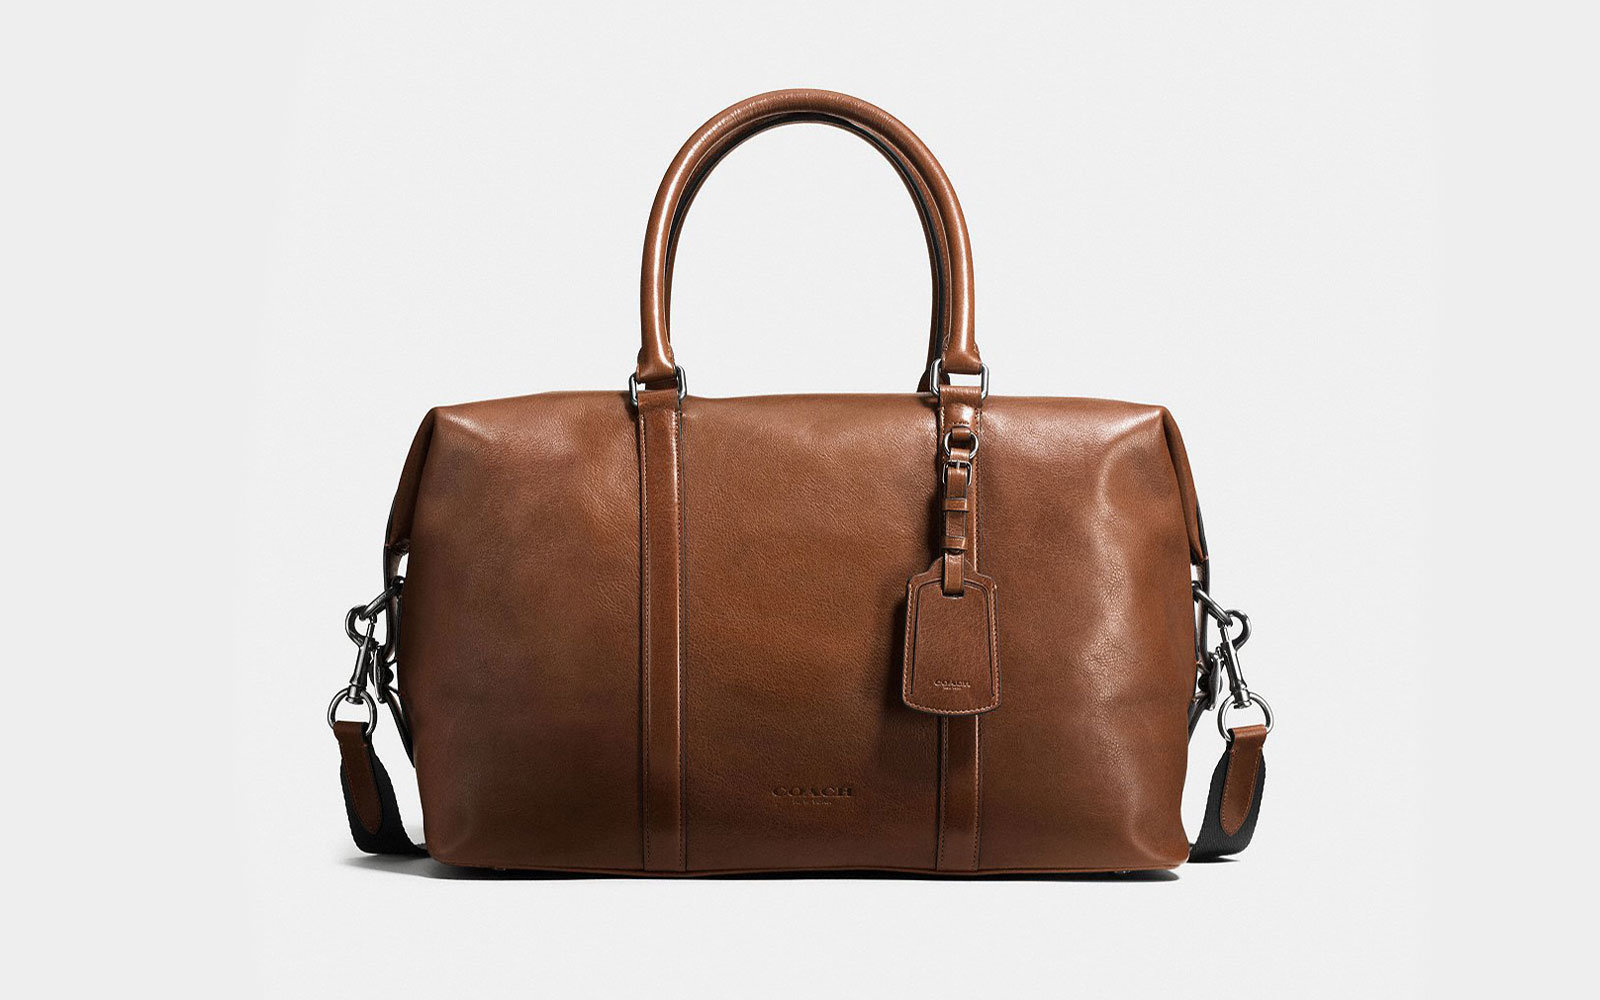 4bb40f487f Coach Duffel Bag. Coach Duffel Bag for Travel. Courtesy of Coach. For those  looking for a leather ...